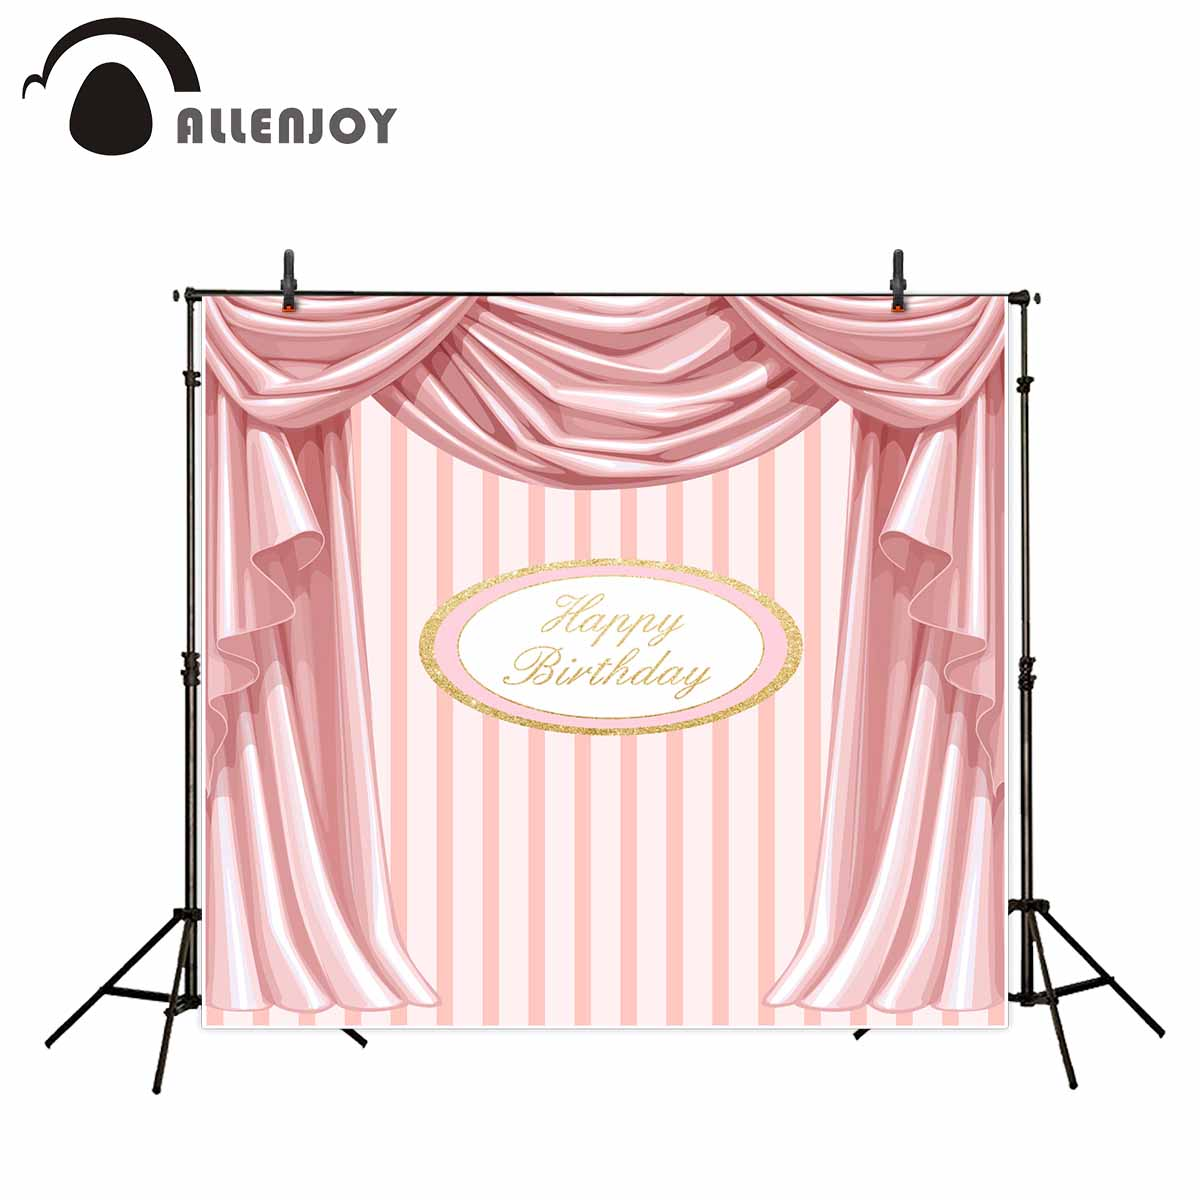 Allenjoy photography backdrops Pink curtains Stripes birthday background Customize photo booth For a photo shoot vinyl backdrops allenjoy backdrops baby shower background pink stripe rose gold circle birthday invitation celebration party customize